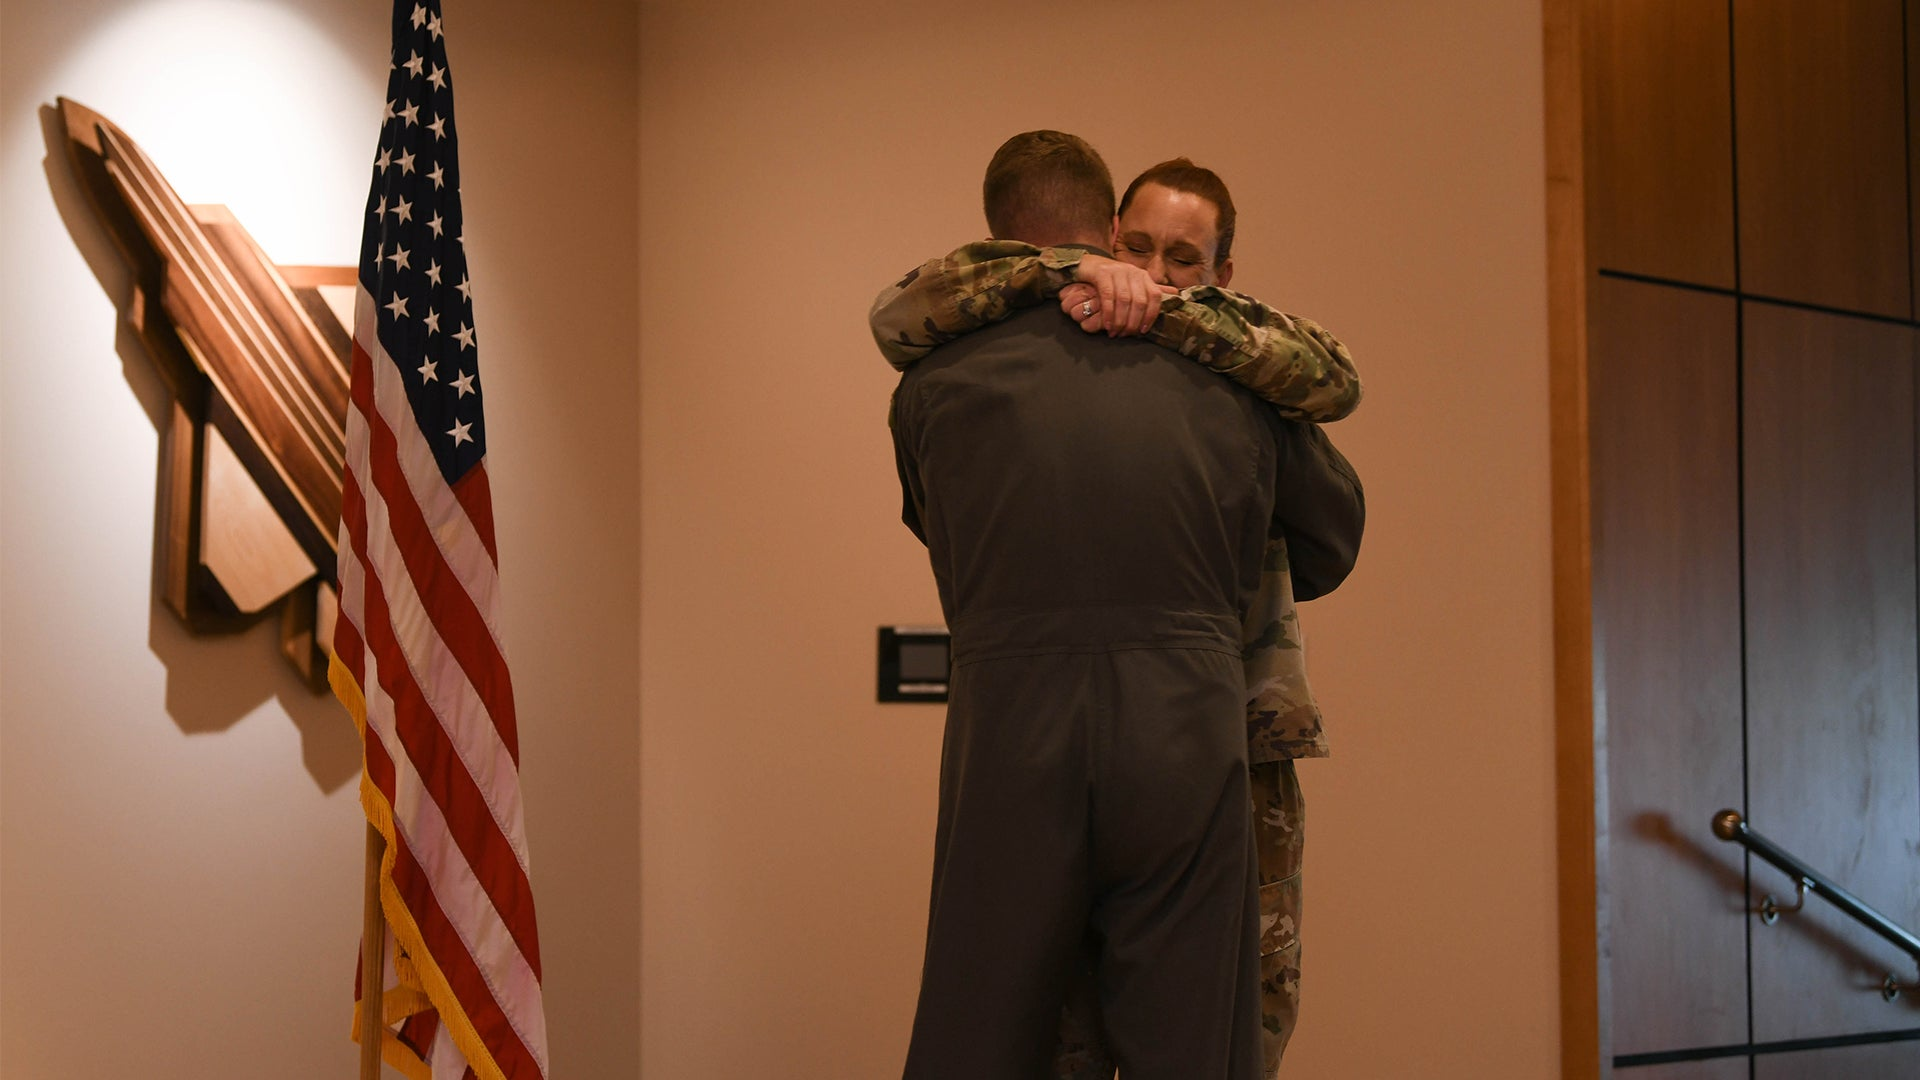 He followed his mom into the Air Force. Now he's administering her final reenlistment oath